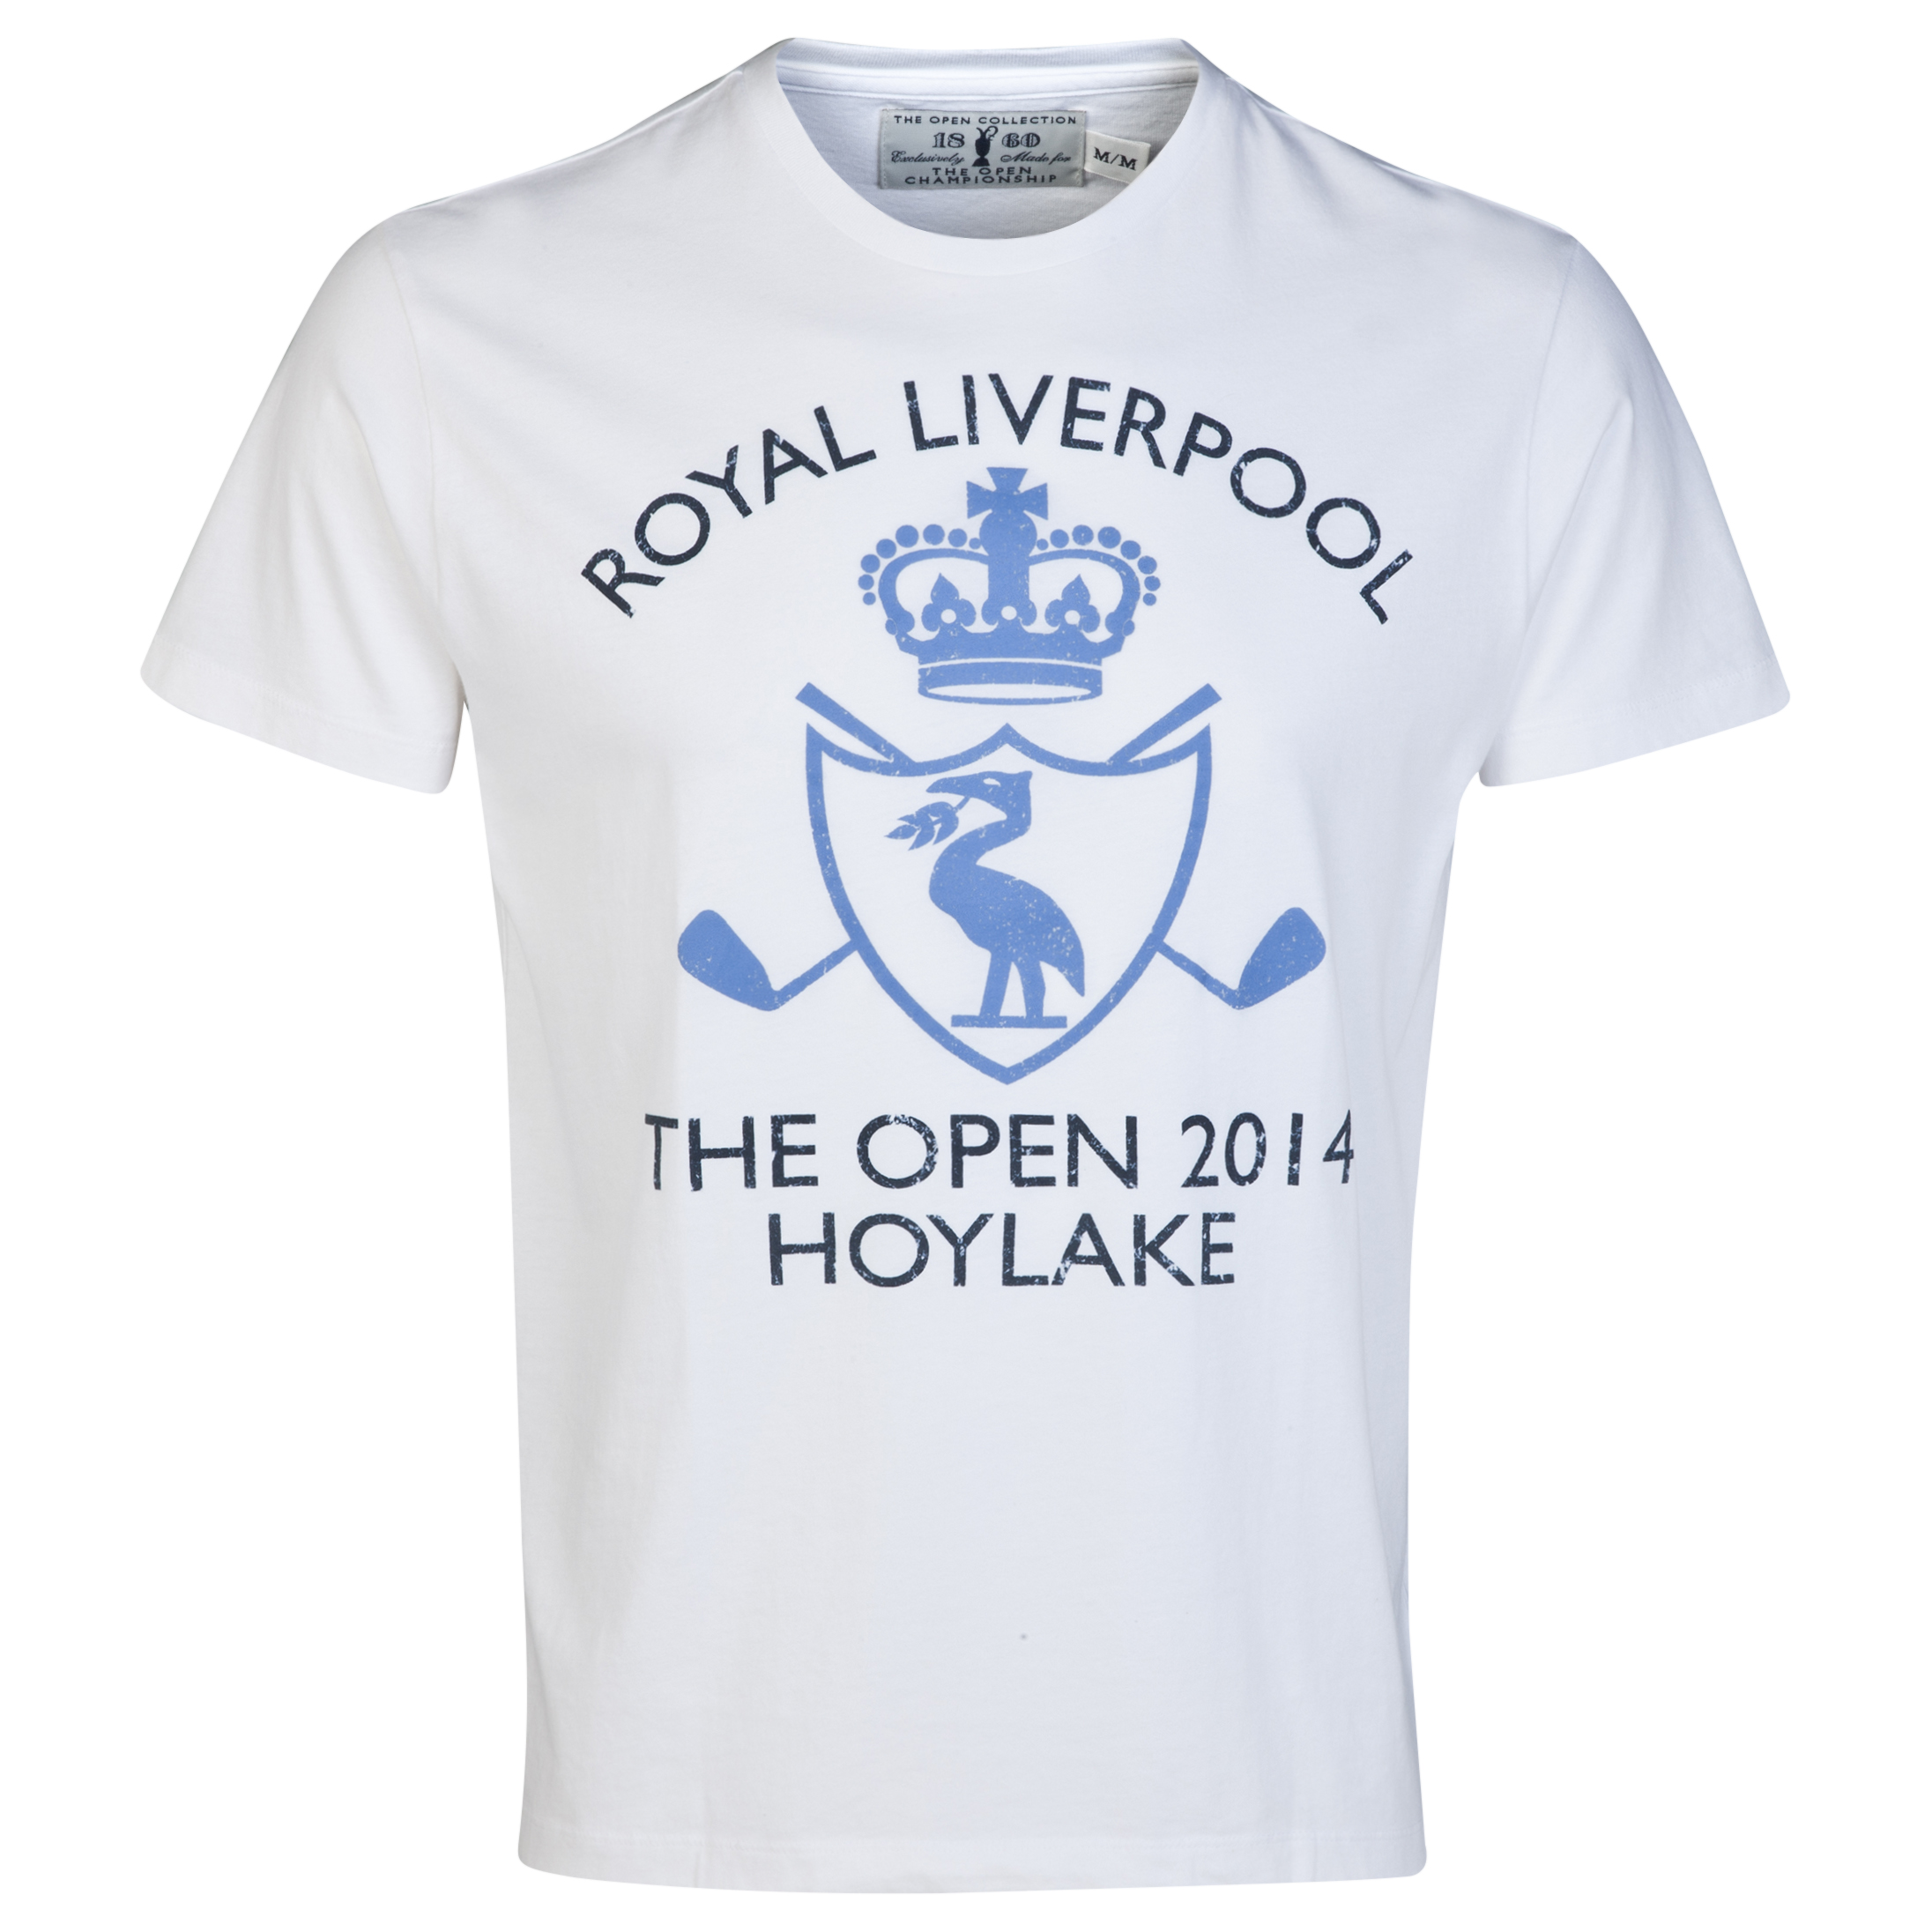 The Open Championship Collection Royal Liverpool 2014 T-Shirt White